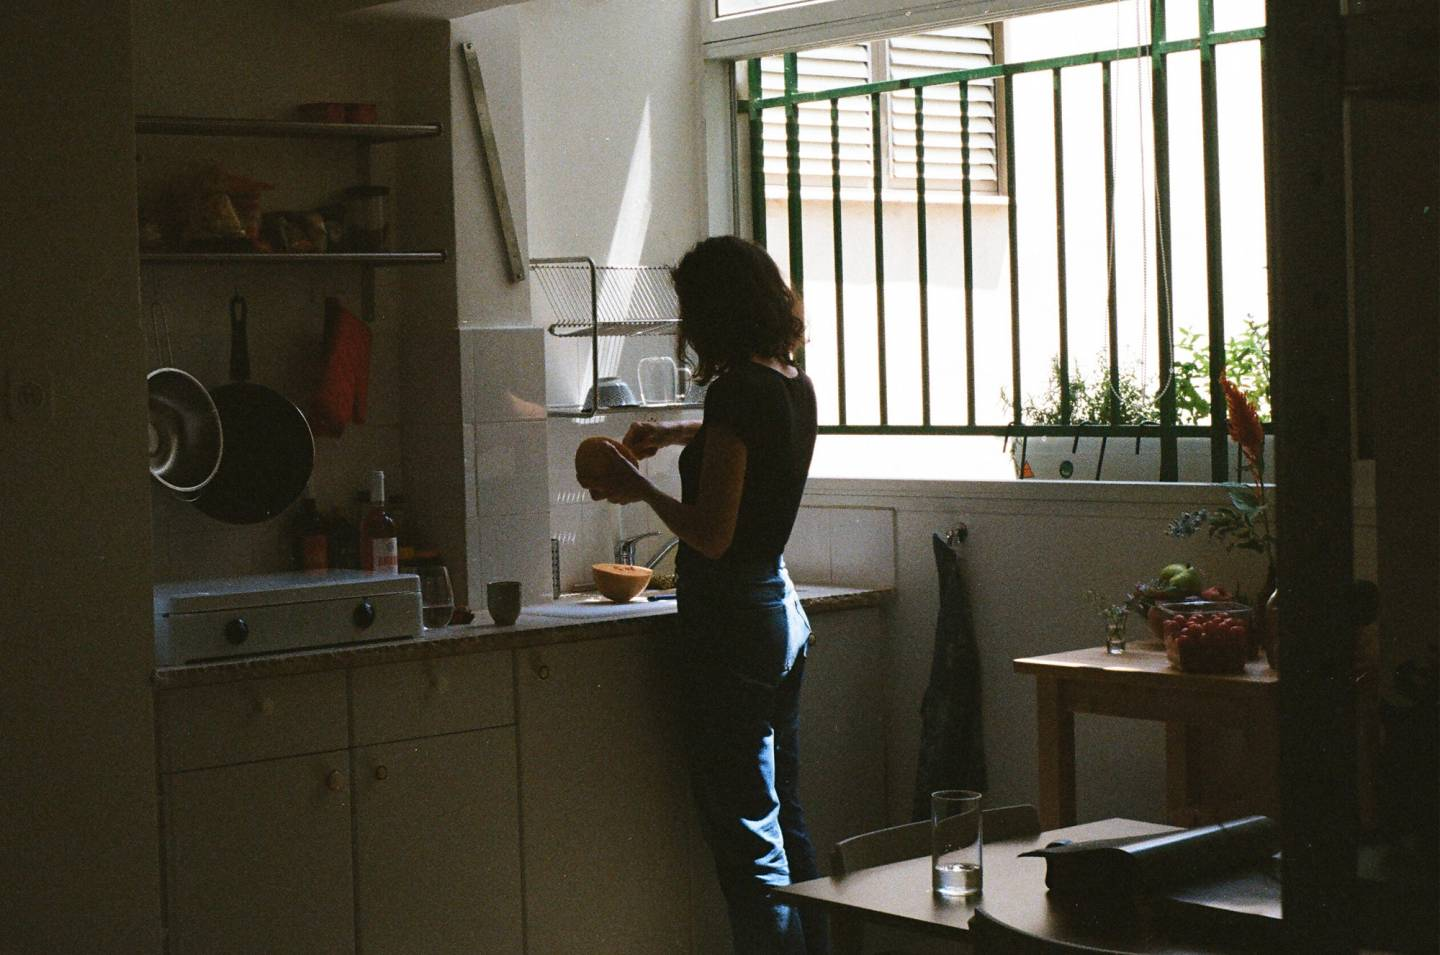 Lindsay Photo Essay | Spaces: Inside a Florentine Bauhaus Apartment in Tel Aviv | Photo by Tal Sophia for Lindsay